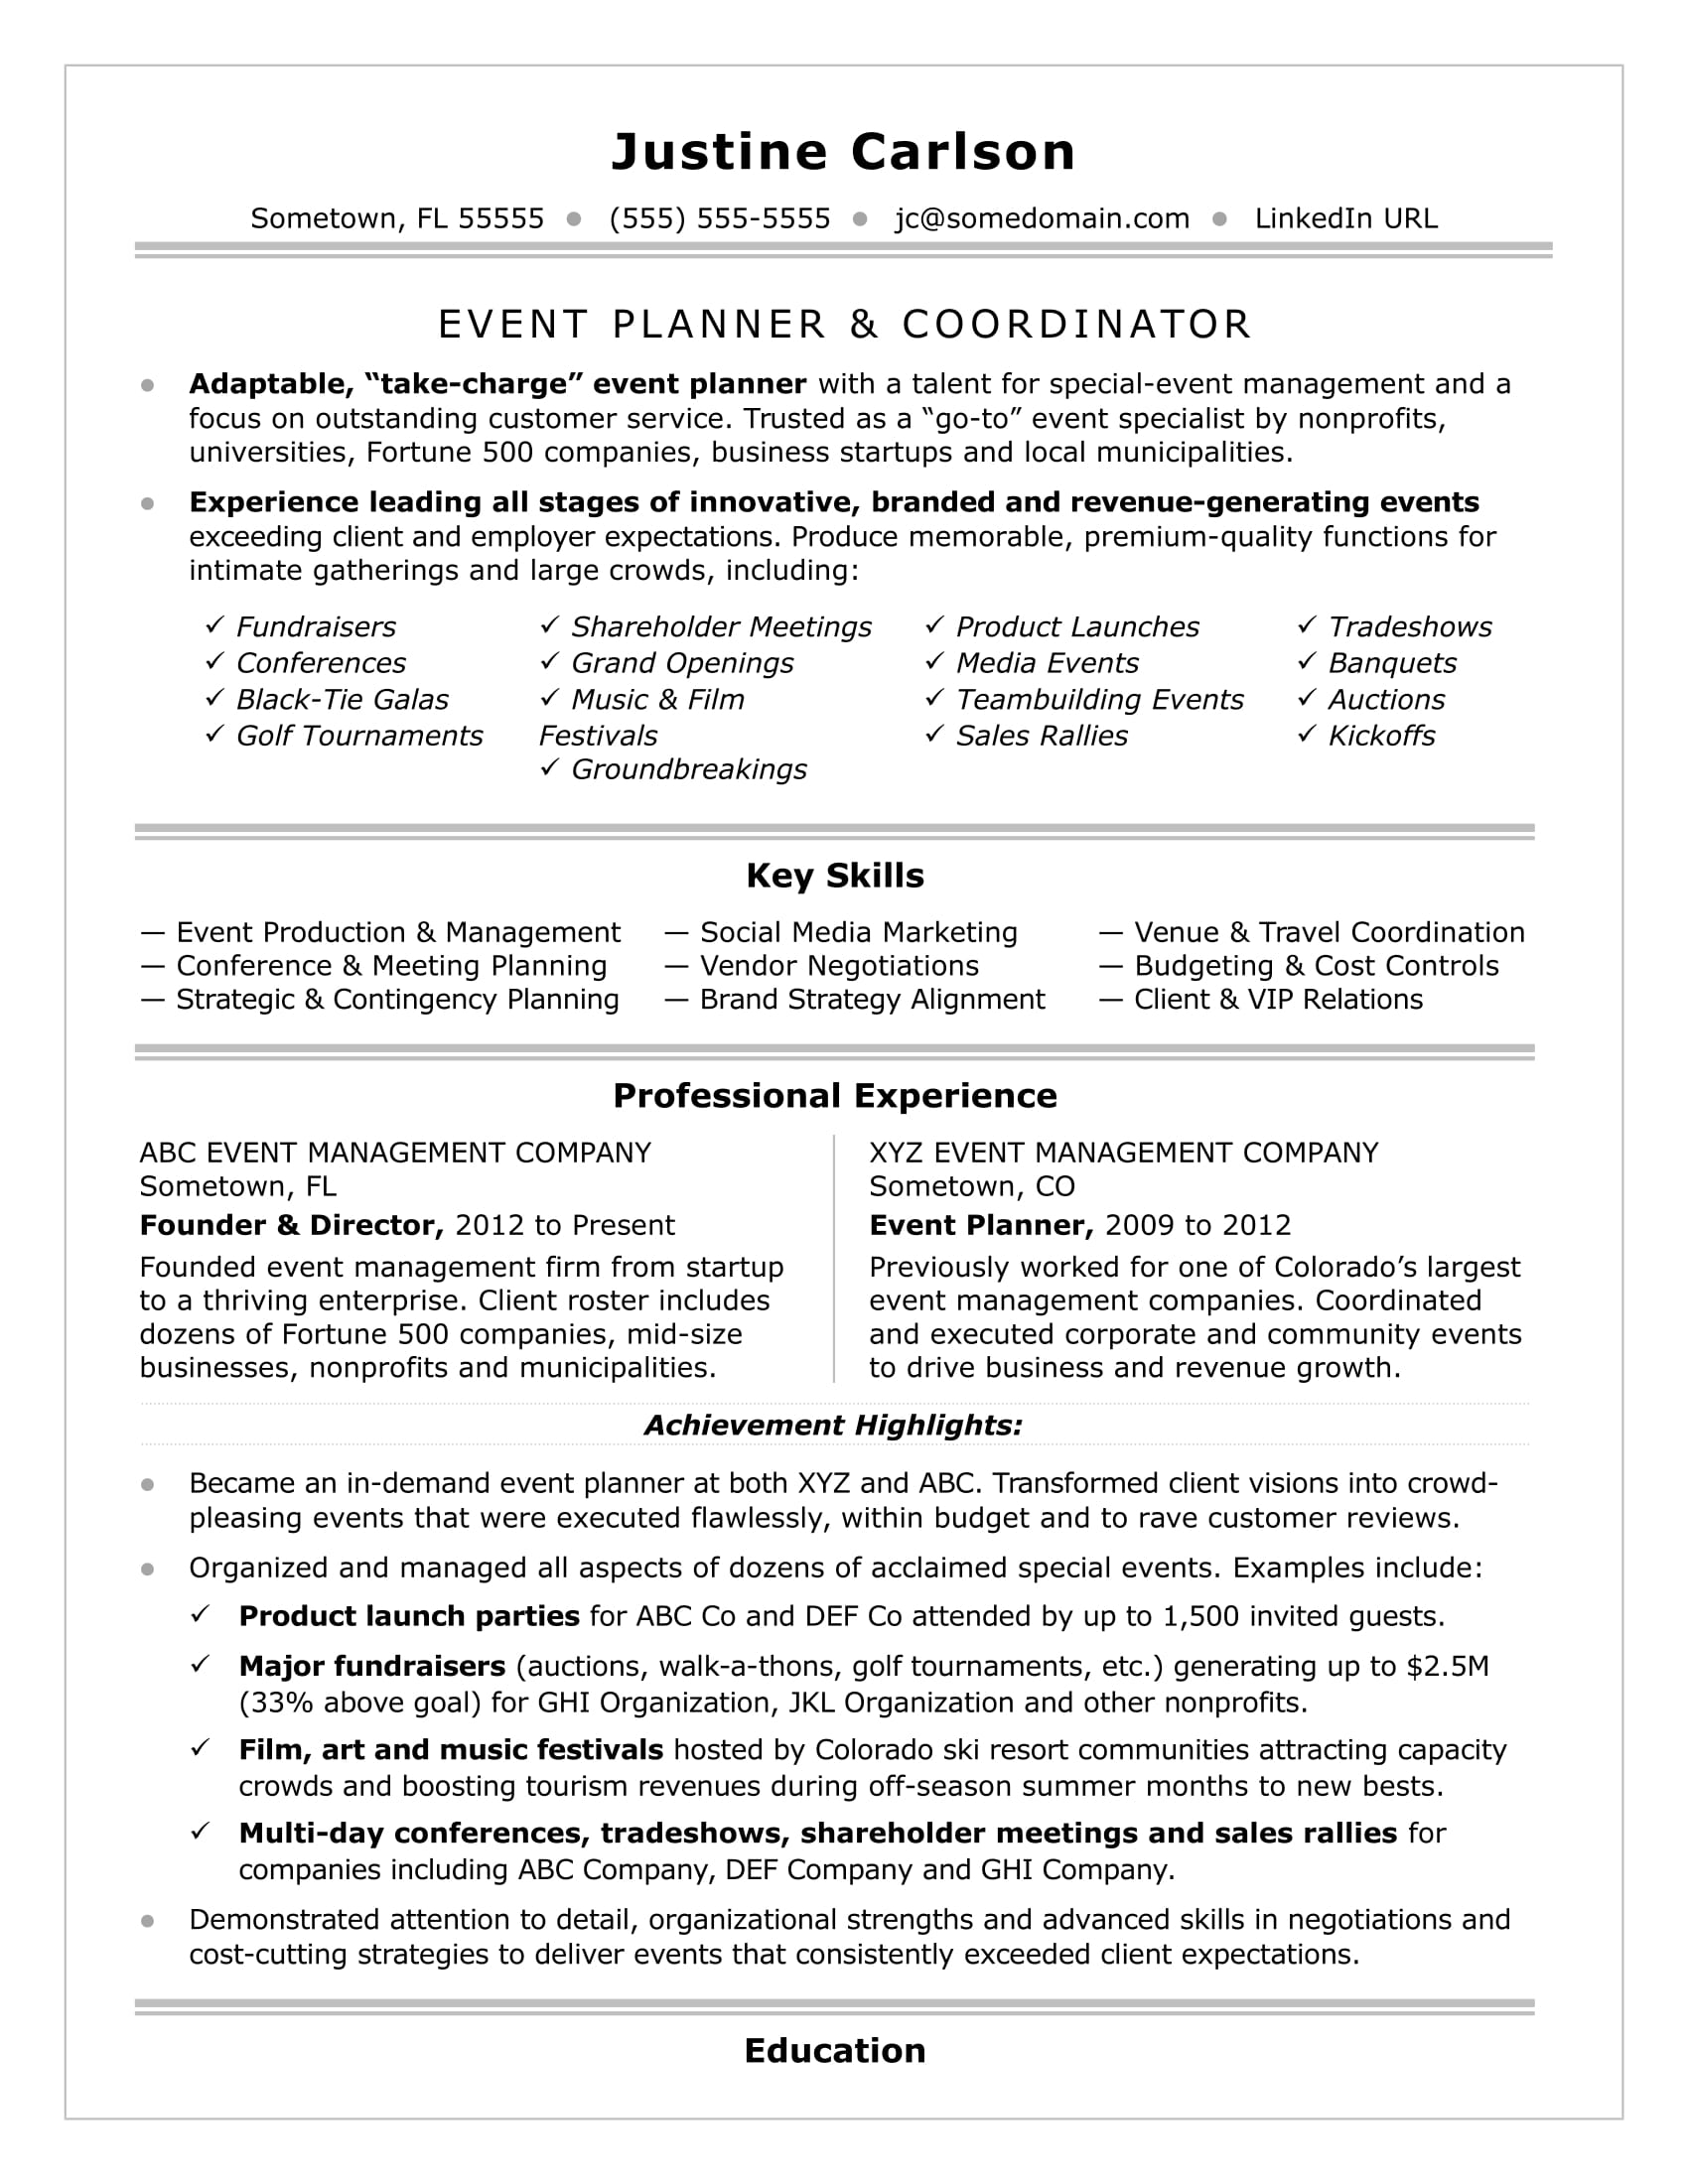 Amazing Event Coordinator Resume Sample Regarding Event Planner Resume Objective